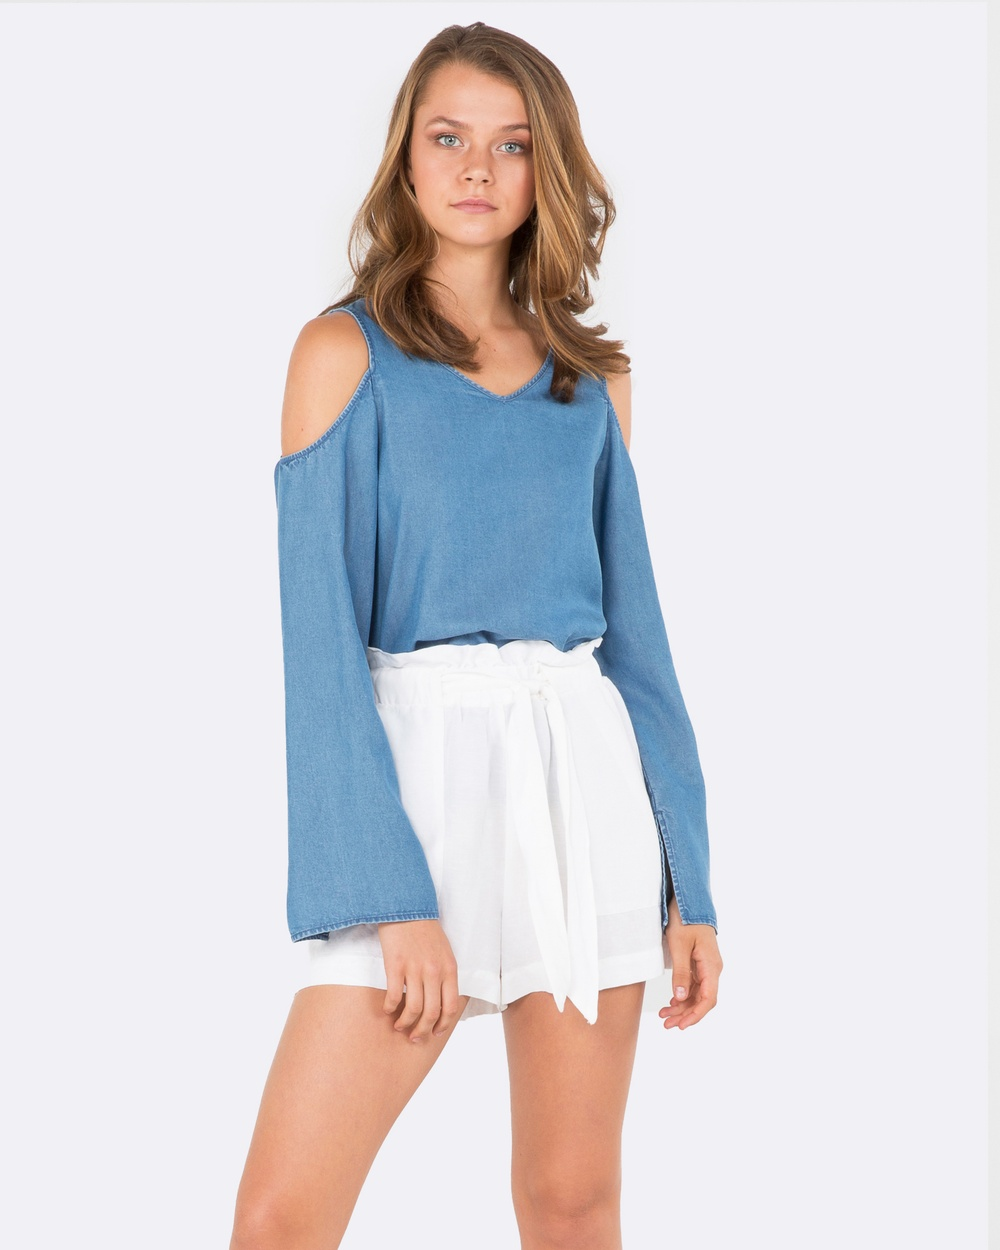 Amelius Notion Top Tops Chambray Notion Top